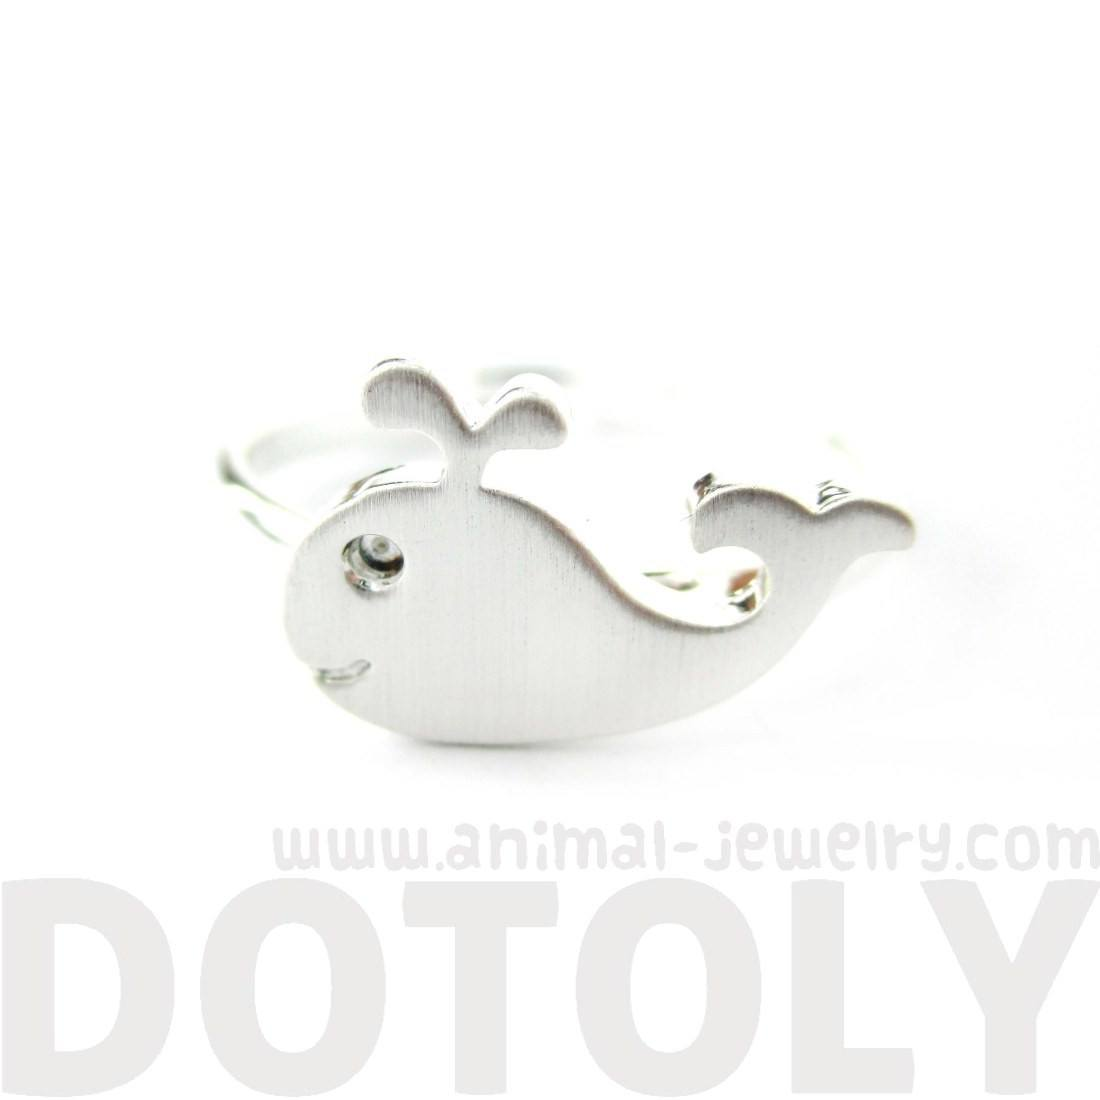 Adorable Whale Shaped Animal Inspired Silver Adjustable Ring | DOTOLY